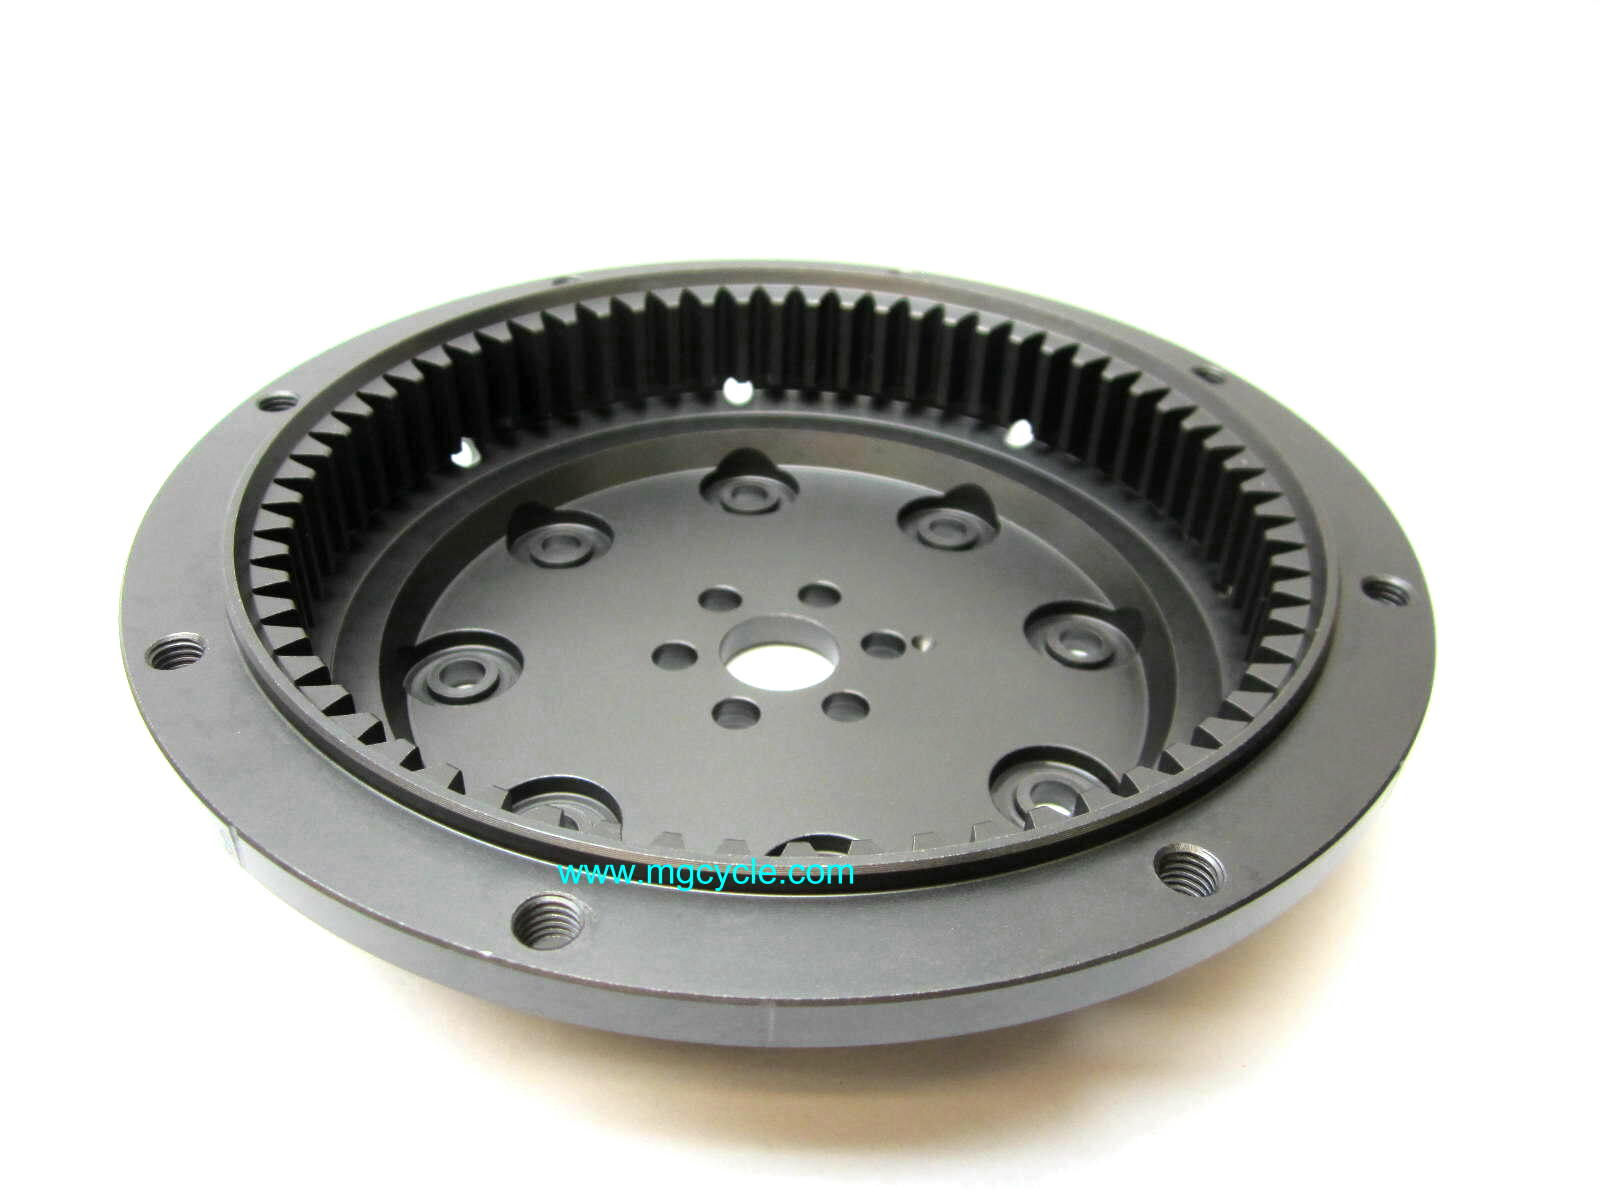 Lightened flywheel 850 LeMans 2.35 kg, 6.2 pounds